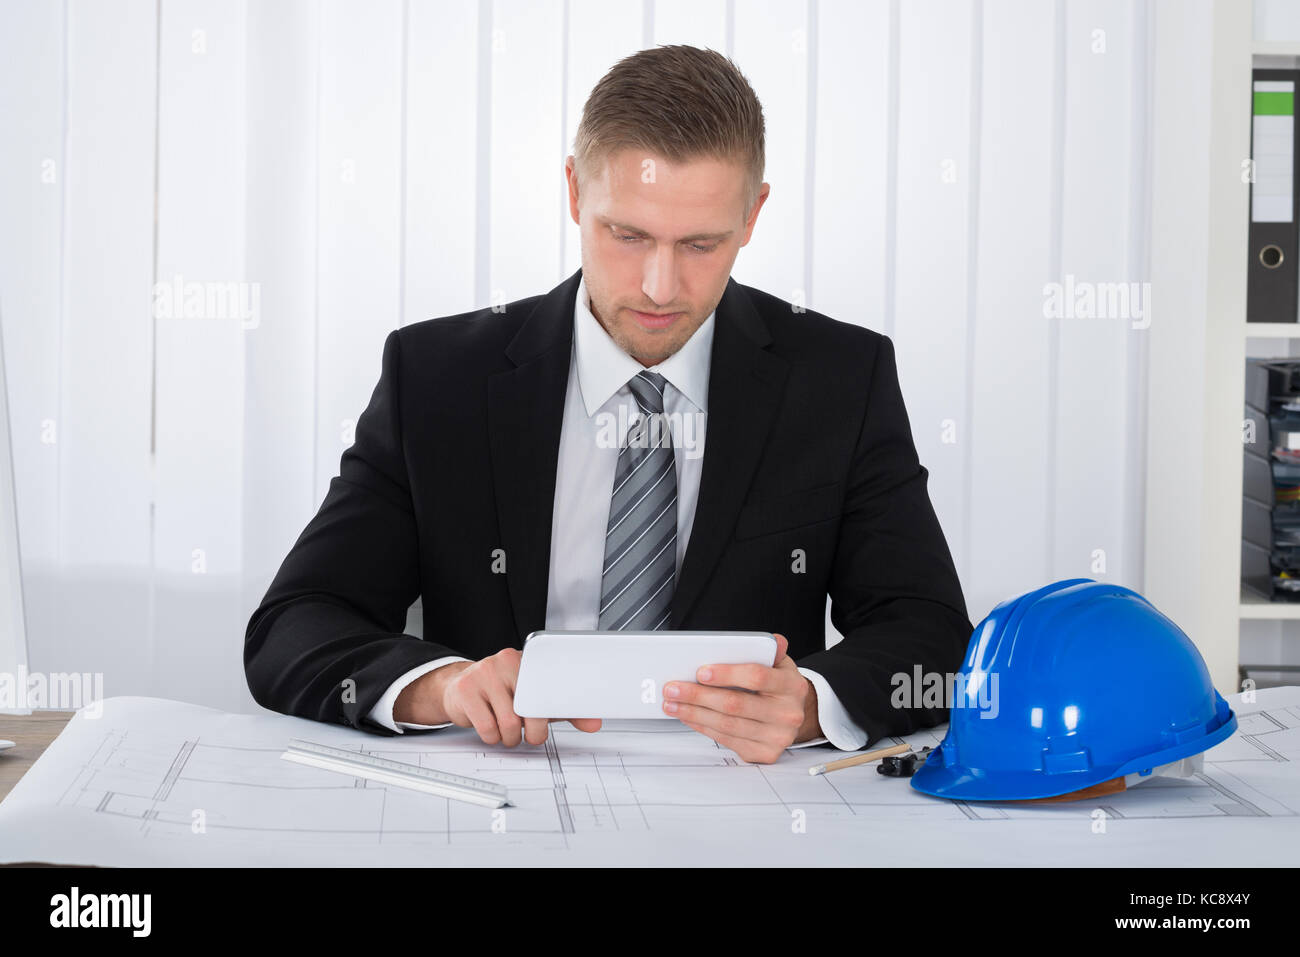 Digital scale overhead stock photos digital scale overhead stock close up of young male architecture using digital tablet over blueprint in office stock malvernweather Gallery